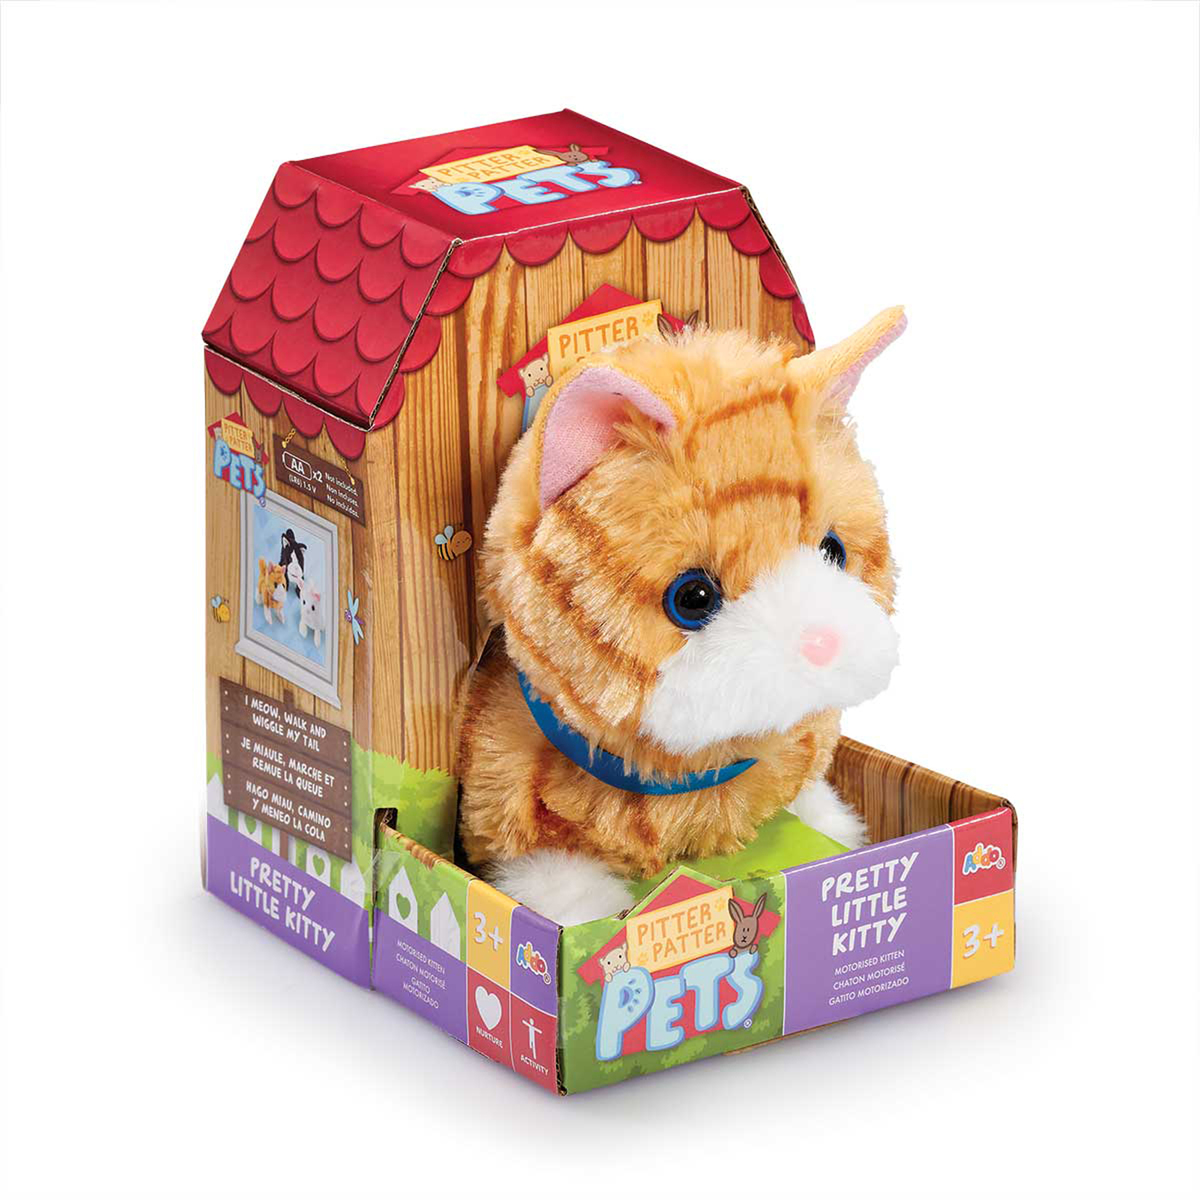 Pitter Patter Pets Pretty Little Kitty - Ginger